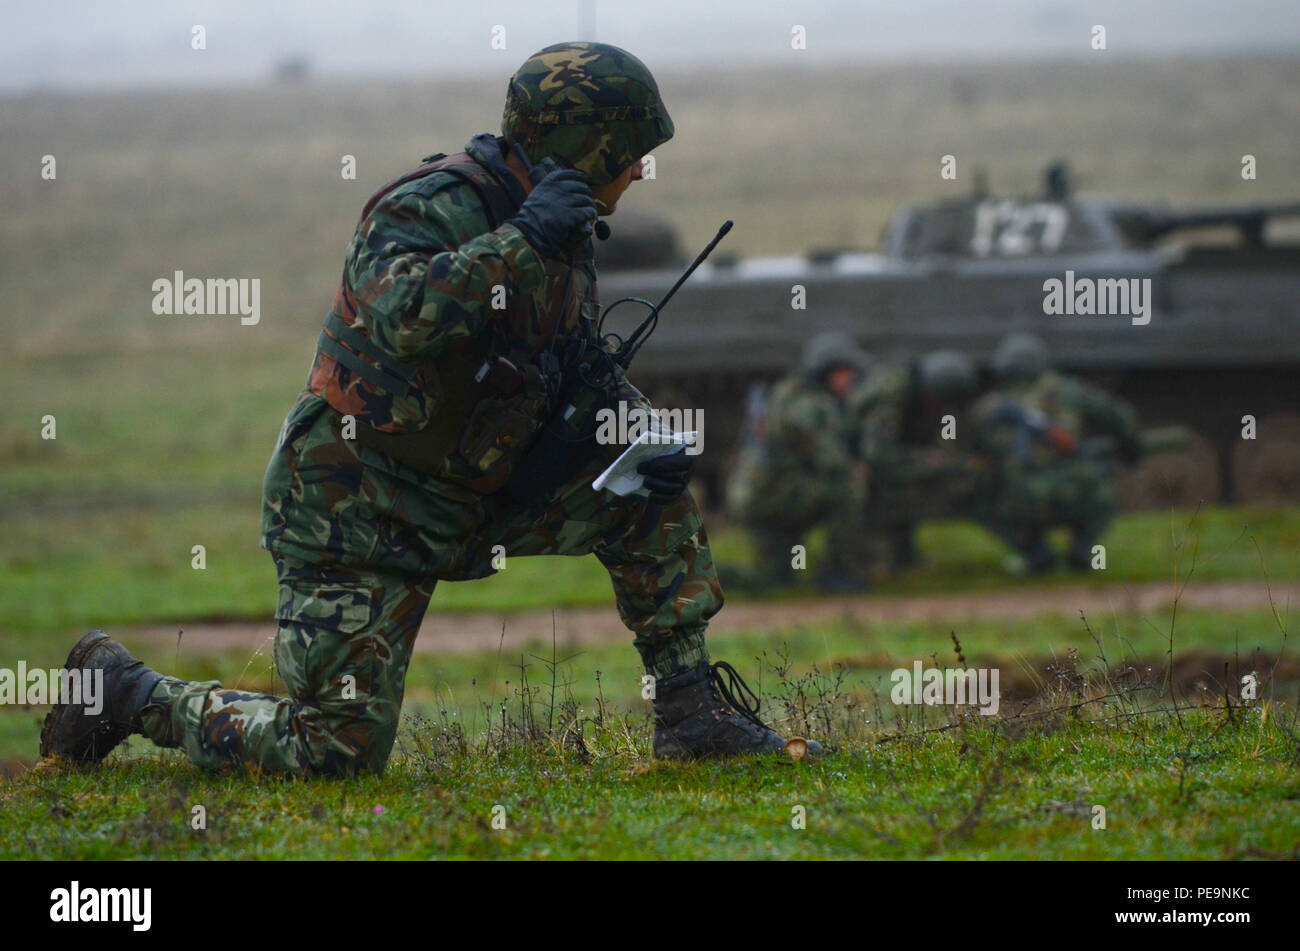 A Bulgarian soldier of 1-61st Mechanized Battalion communicates with other team leaders to make the next attack move on the enemy during Exercise Peace Sentinel at Novo Selo Training Center, Bulgaria, Nov. 24, 2015. (U.S. Army photo by Staff Sgt. Steven M. Colvin/Released) - Stock Image